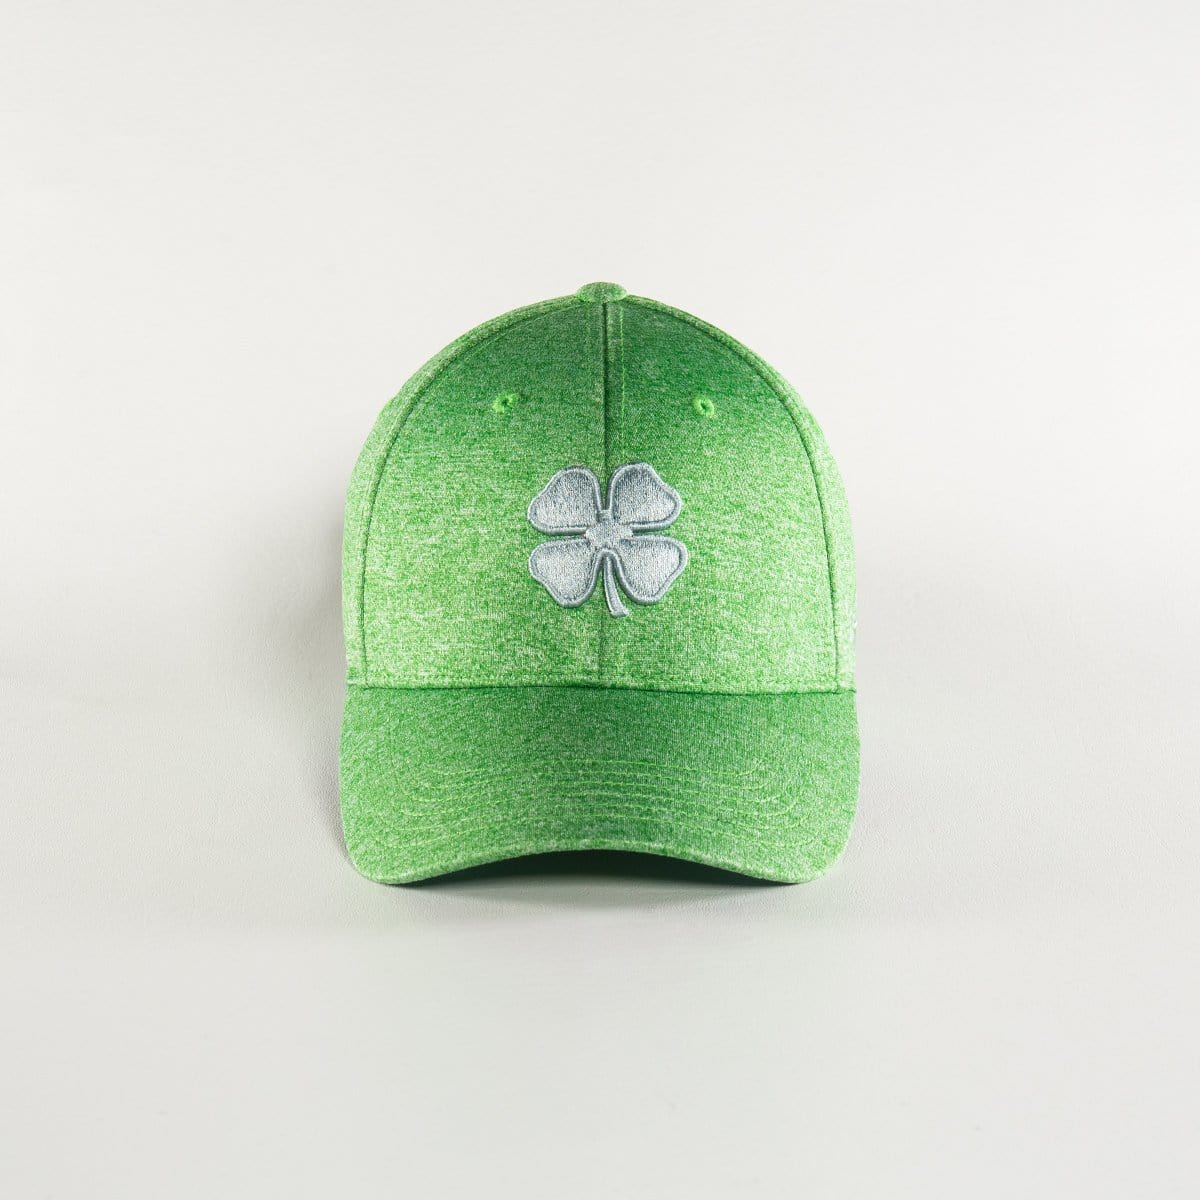 Black Clover Baseball Caps Lucky Heather Apple Green equestrian team apparel online tack store mobile tack store custom farm apparel custom show stable clothing equestrian lifestyle horse show clothing riding clothes horses equestrian tack store